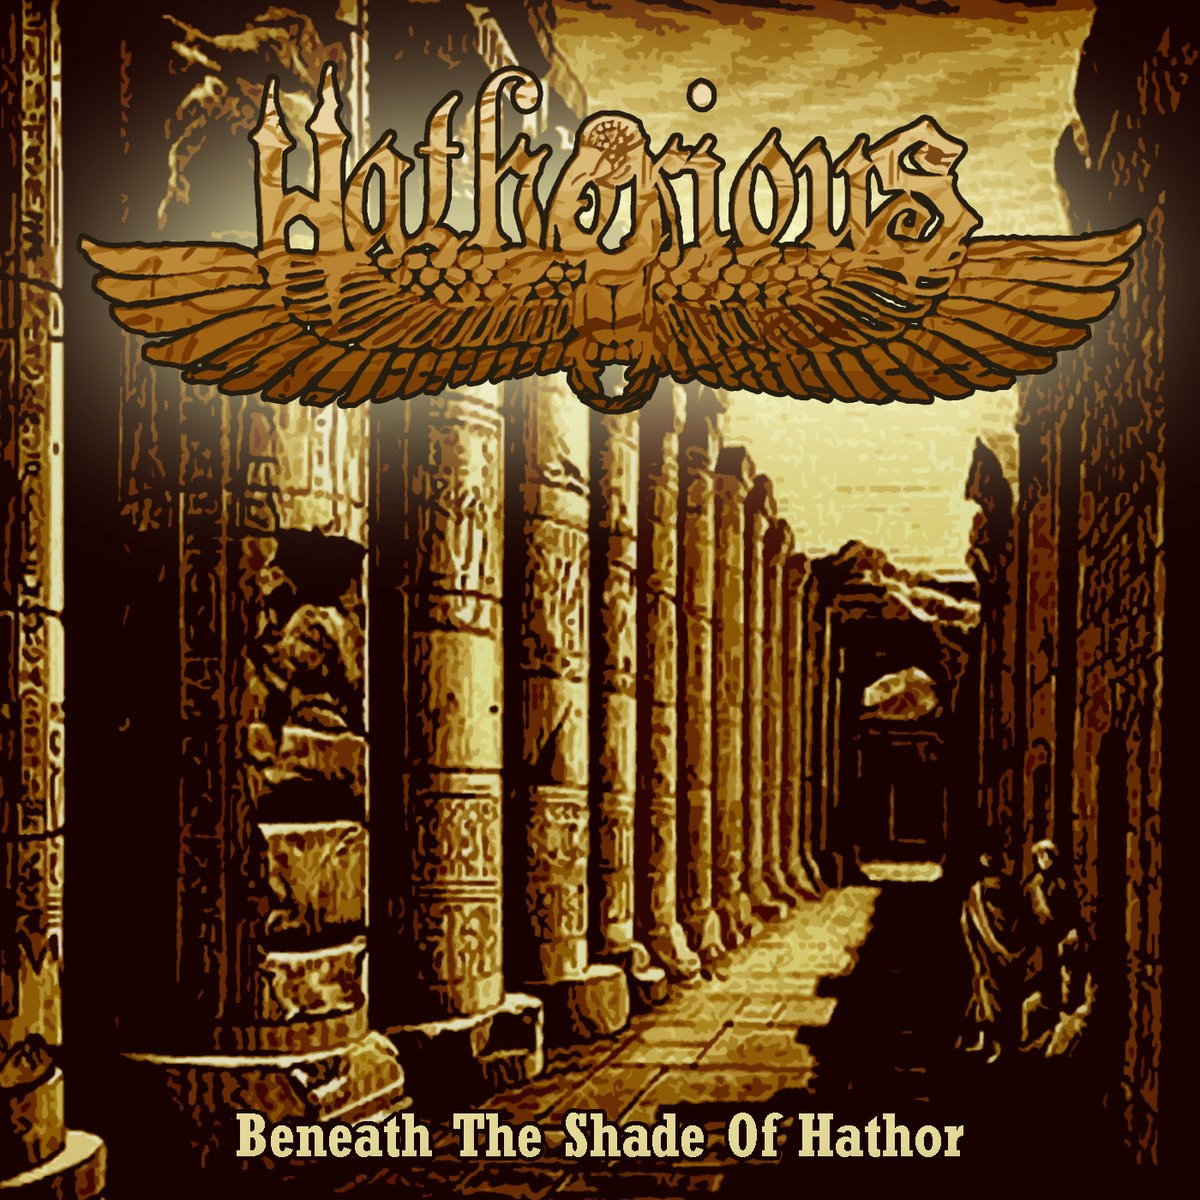 Review for Hathorious - Beneath the Shade of Hathor